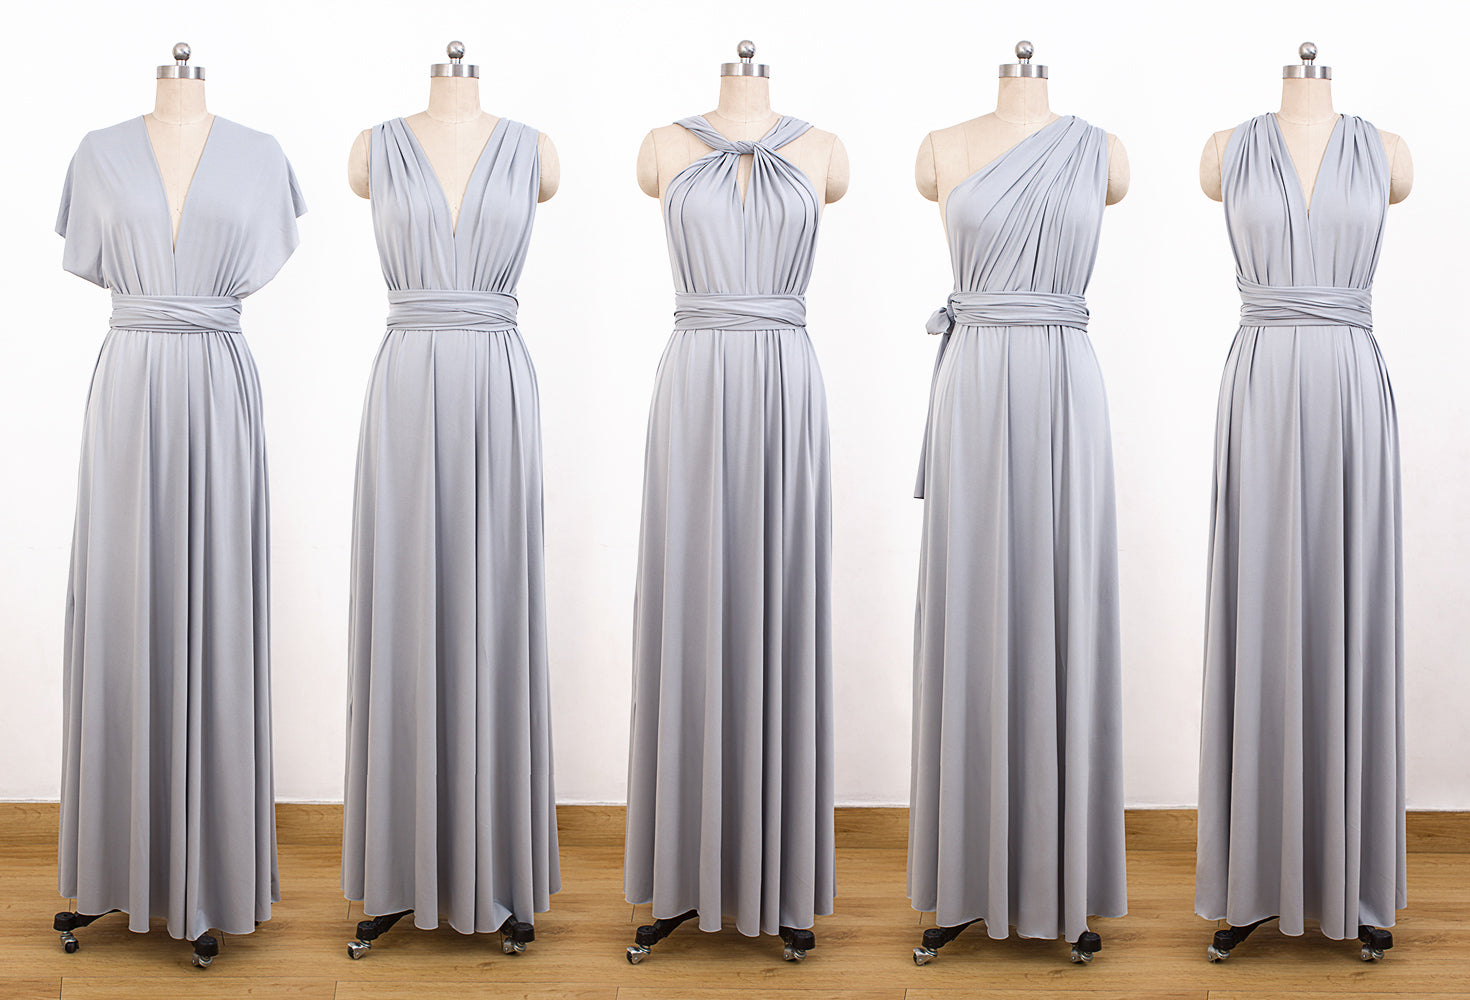 classic styles huge inventory promotion Grey Convertable Dress,Multiway Wrap Dress,Infinity Bridesmaids Dress